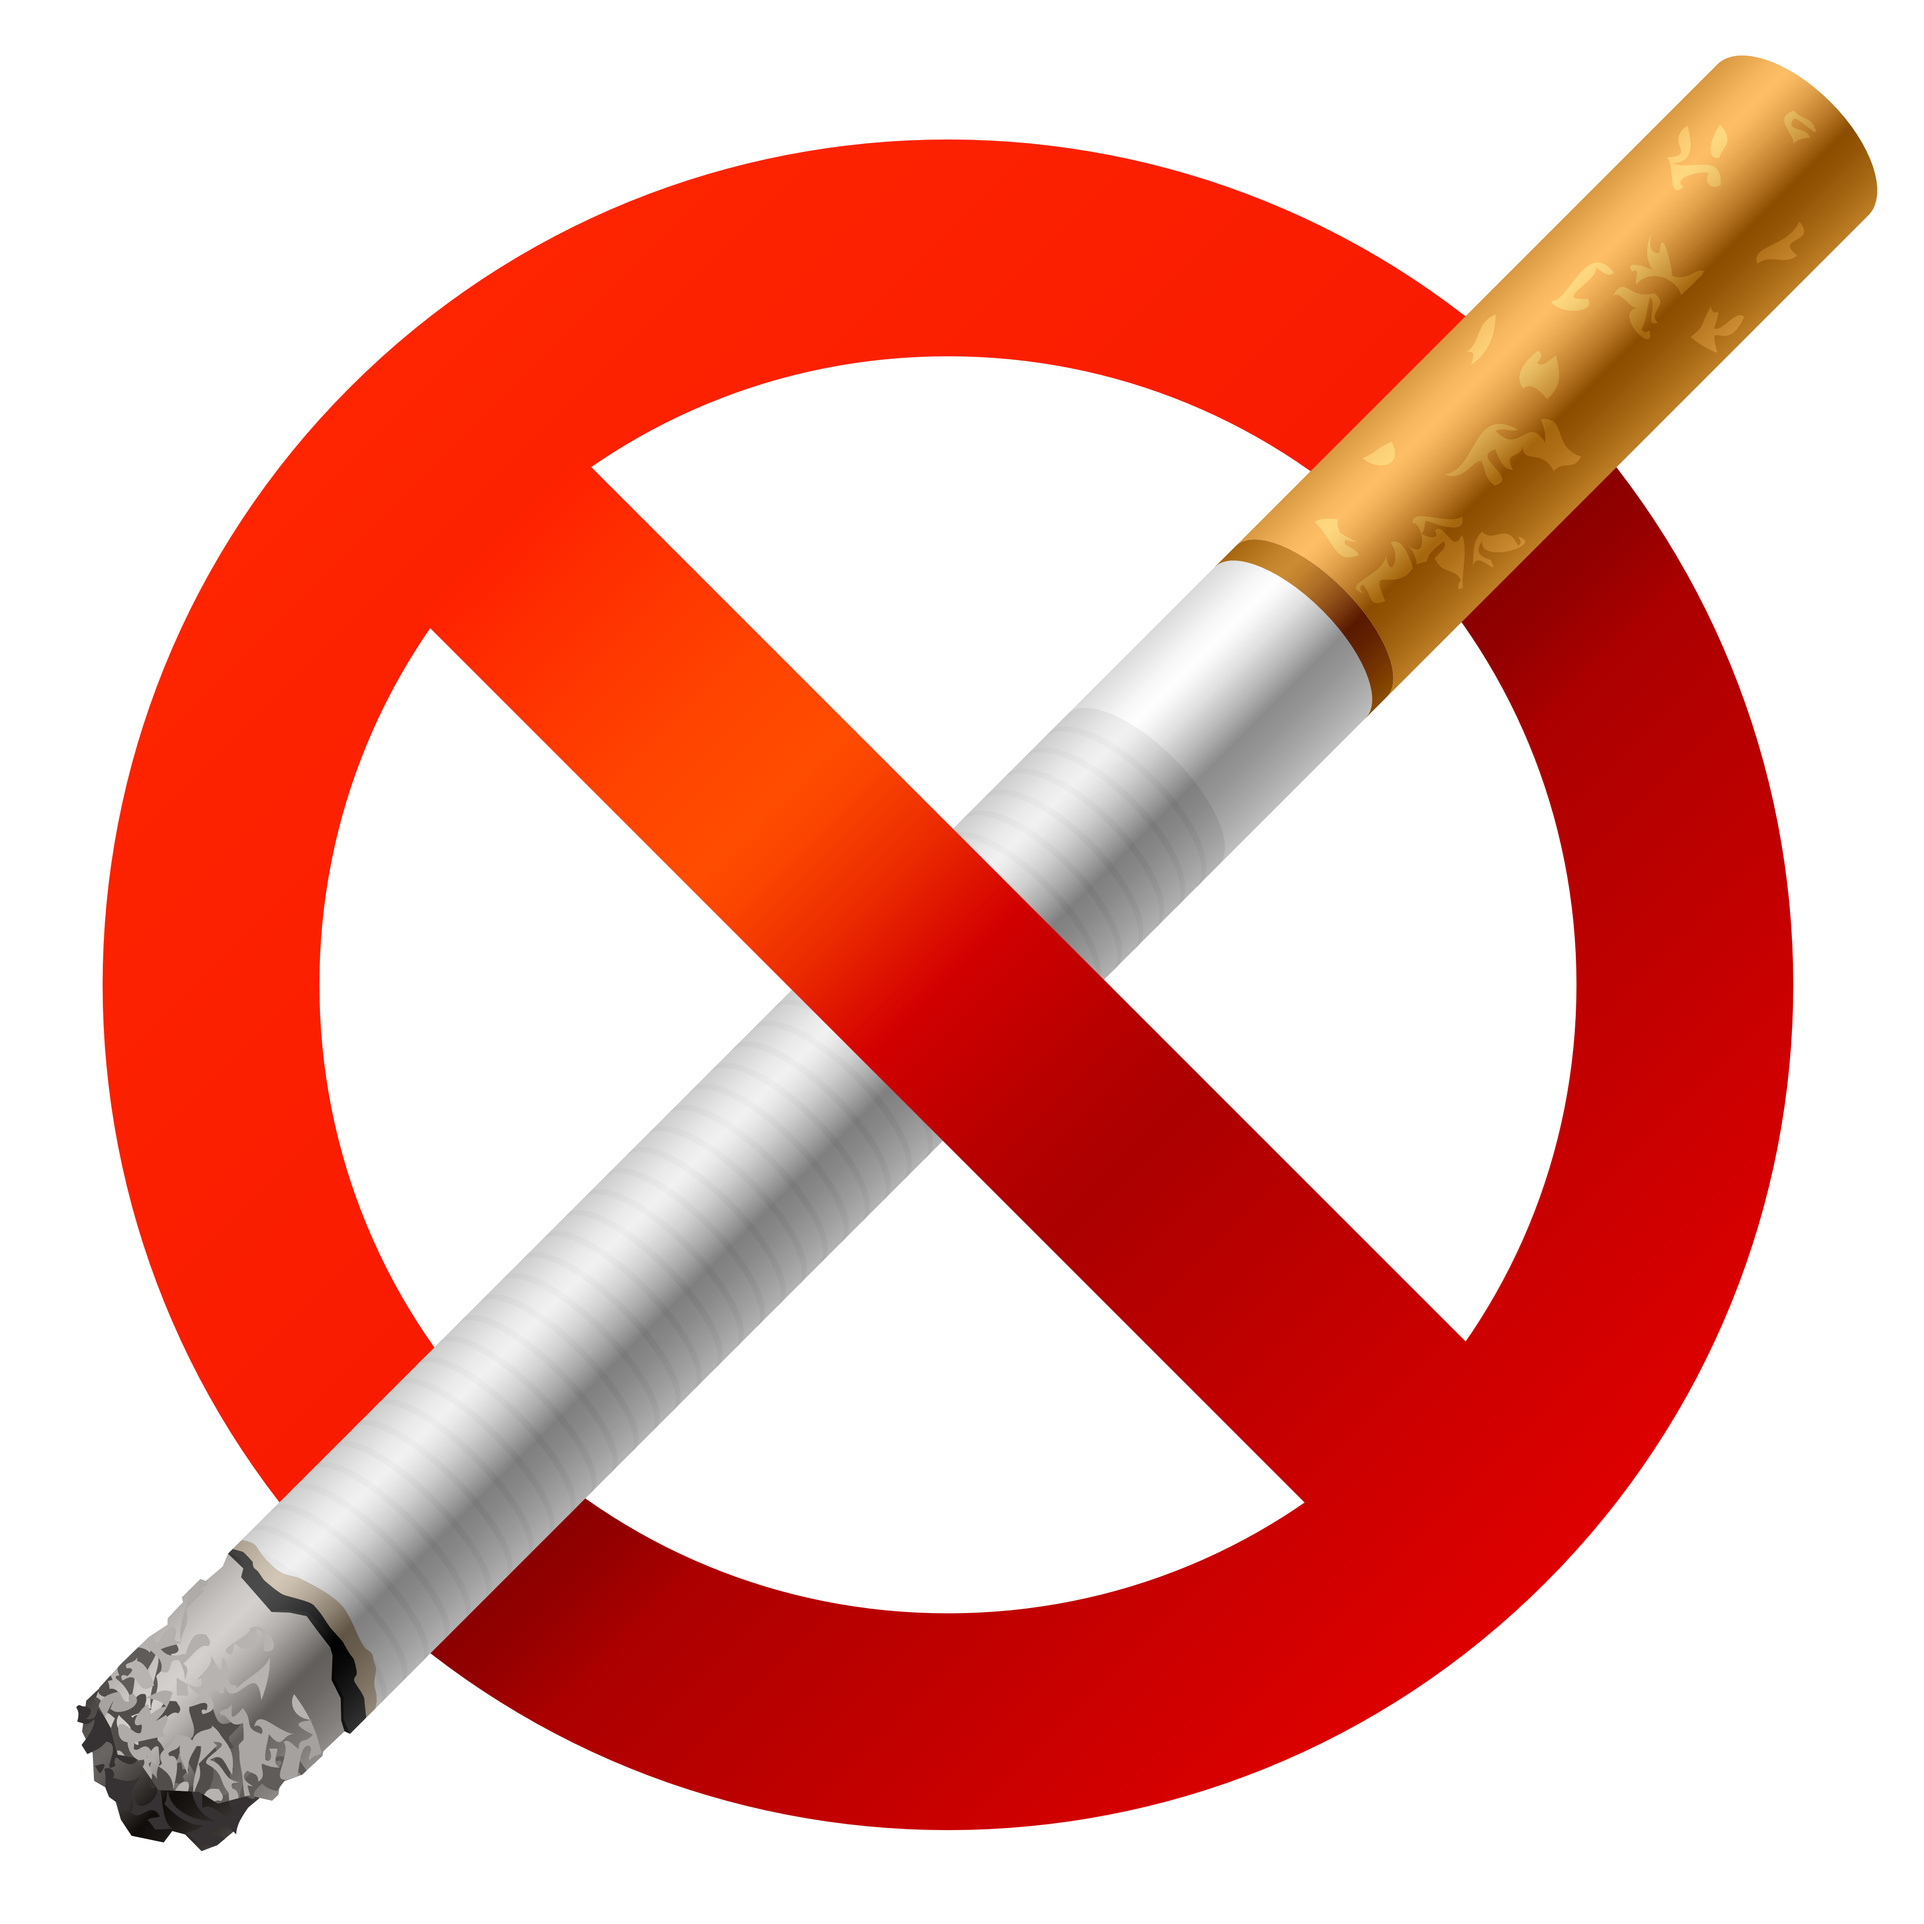 Cigarette clipart cigar Smoking Bad Cigarette on Health